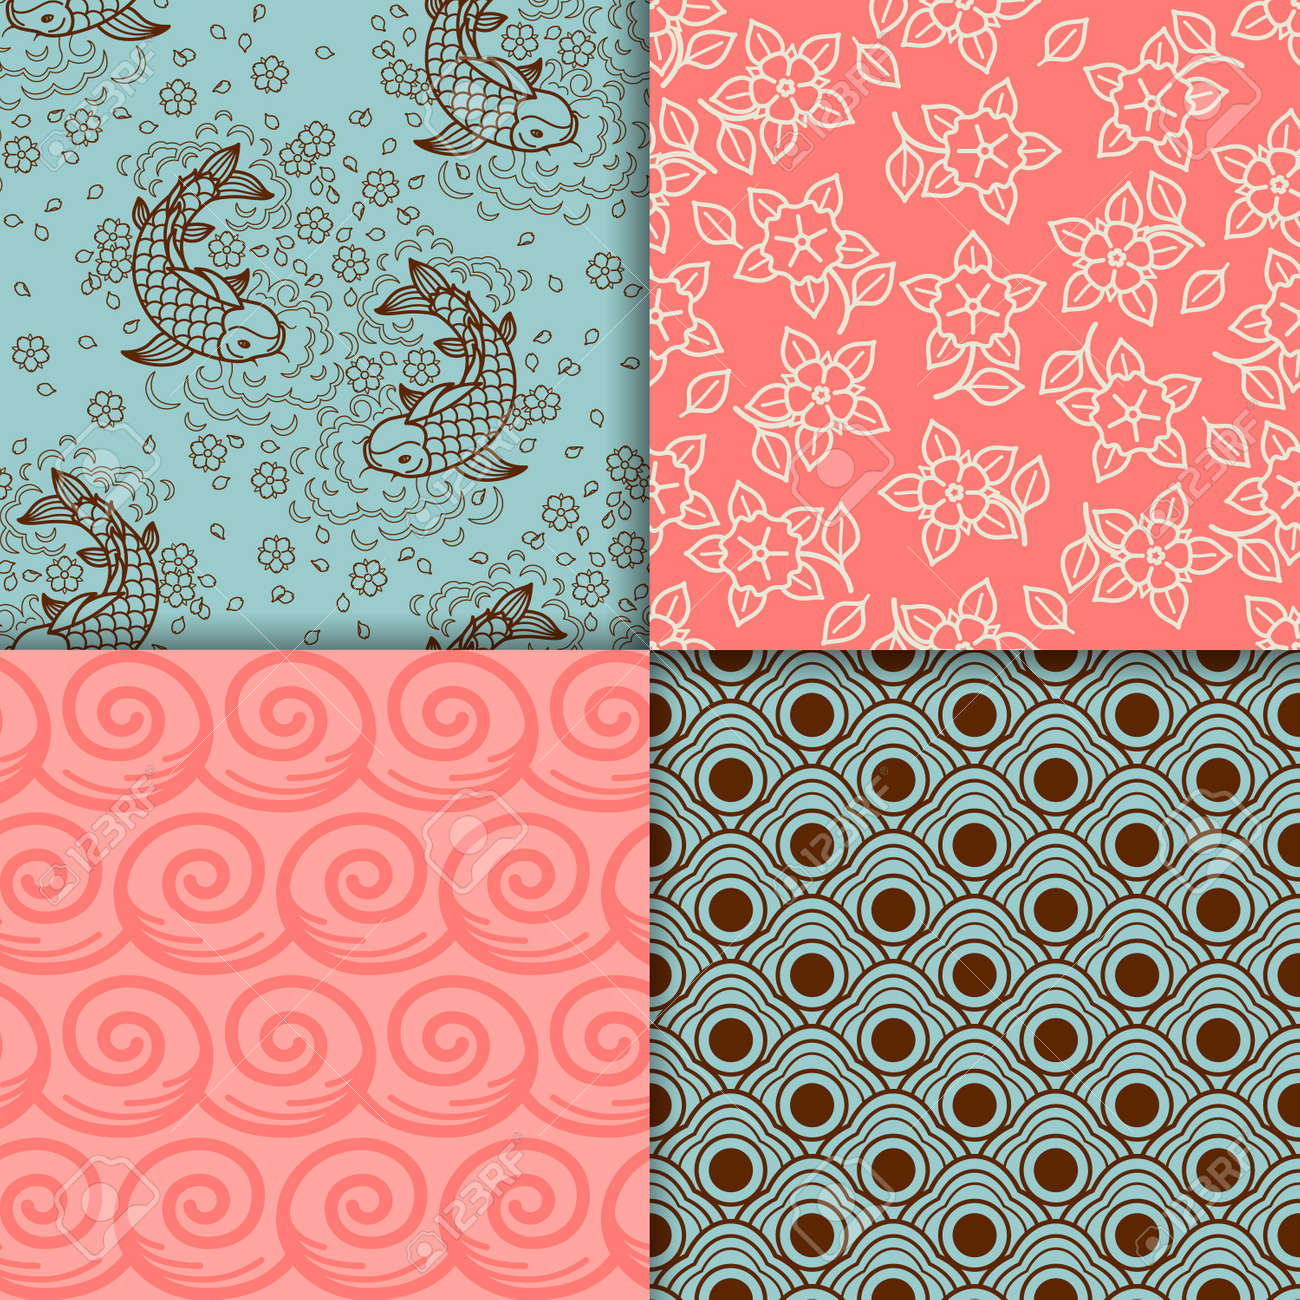 Japanese turqiouse and pink pattern set. Vector illustration - 165987463